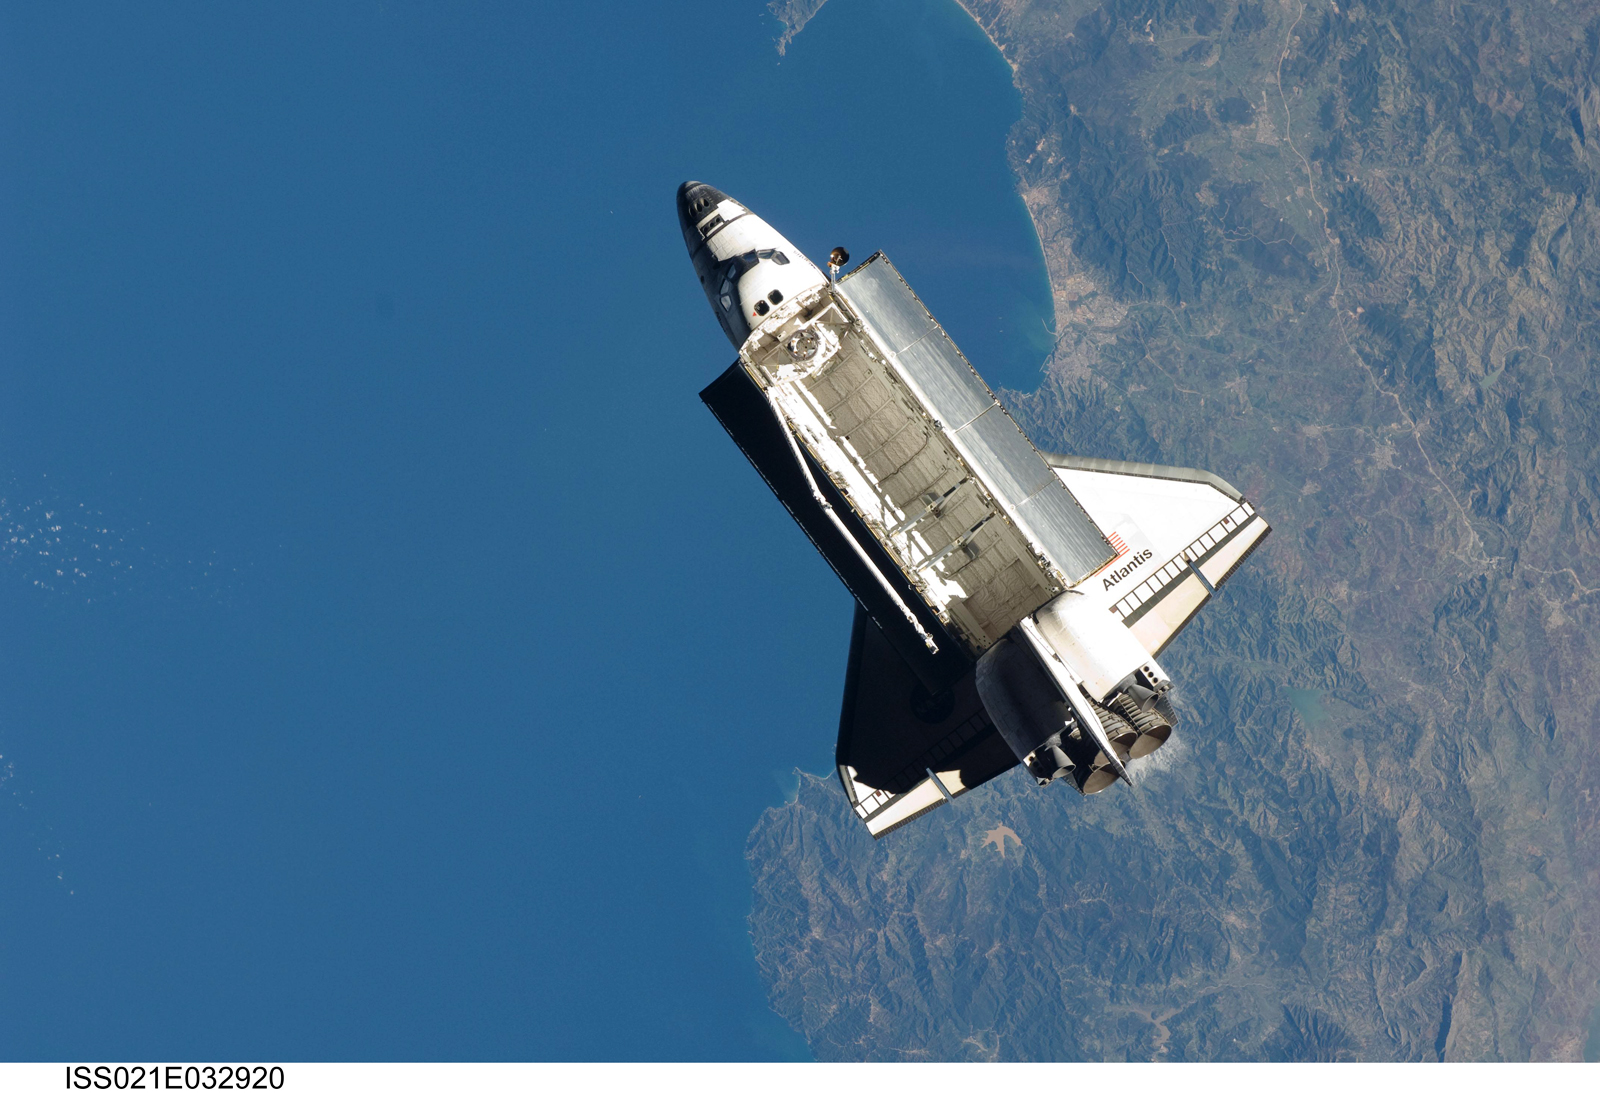 Stunning Space Shuttle HD Wallpapers| HD Wallpapers ,Backgrounds ...